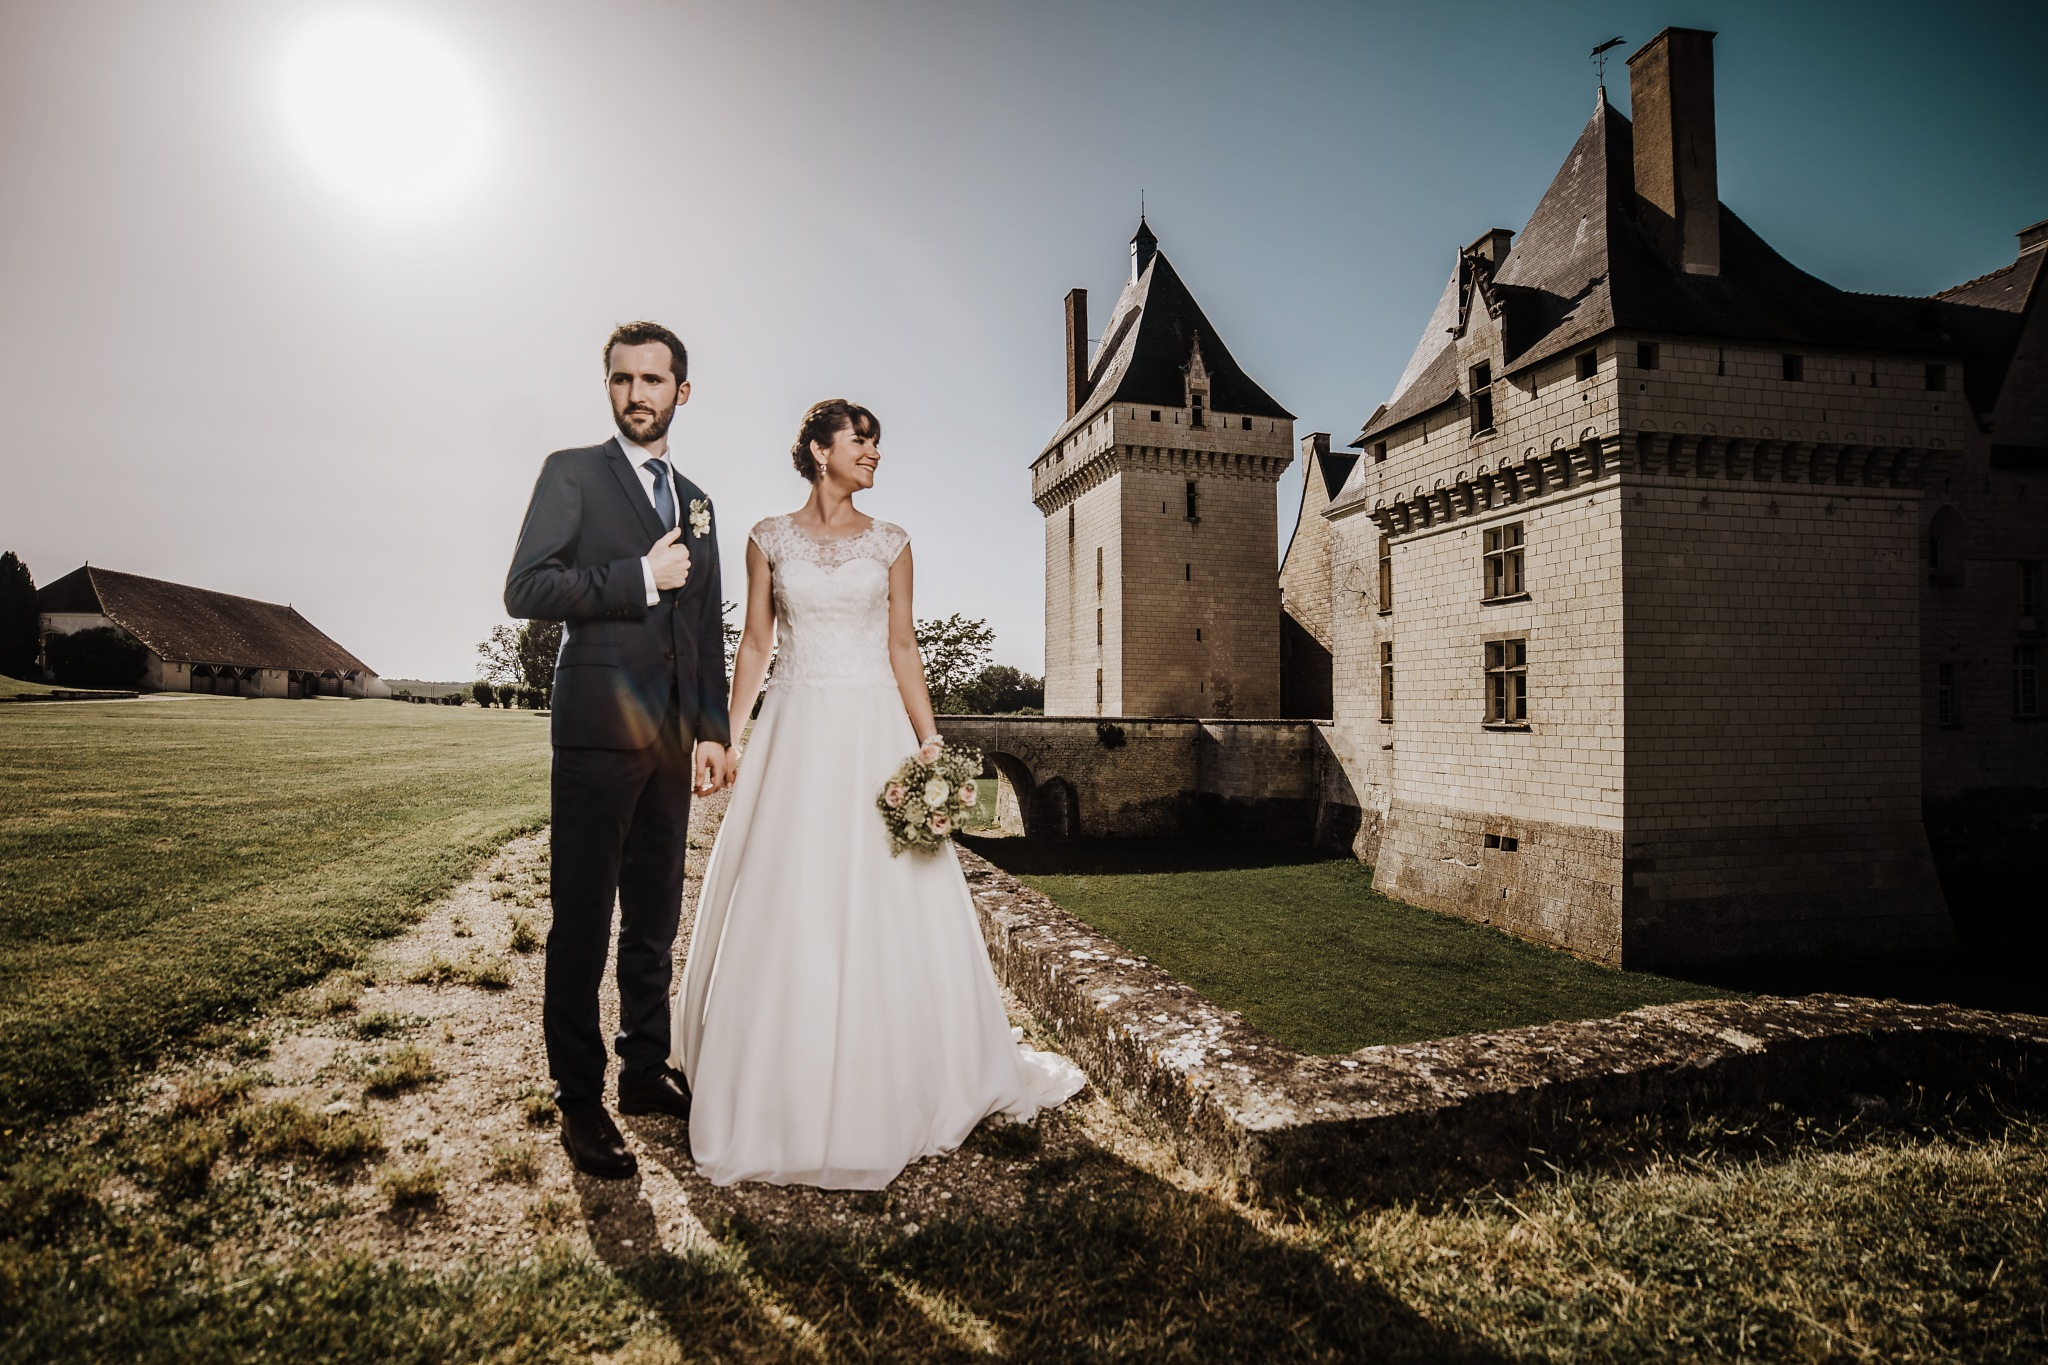 The french castle by Vladimir Plavac